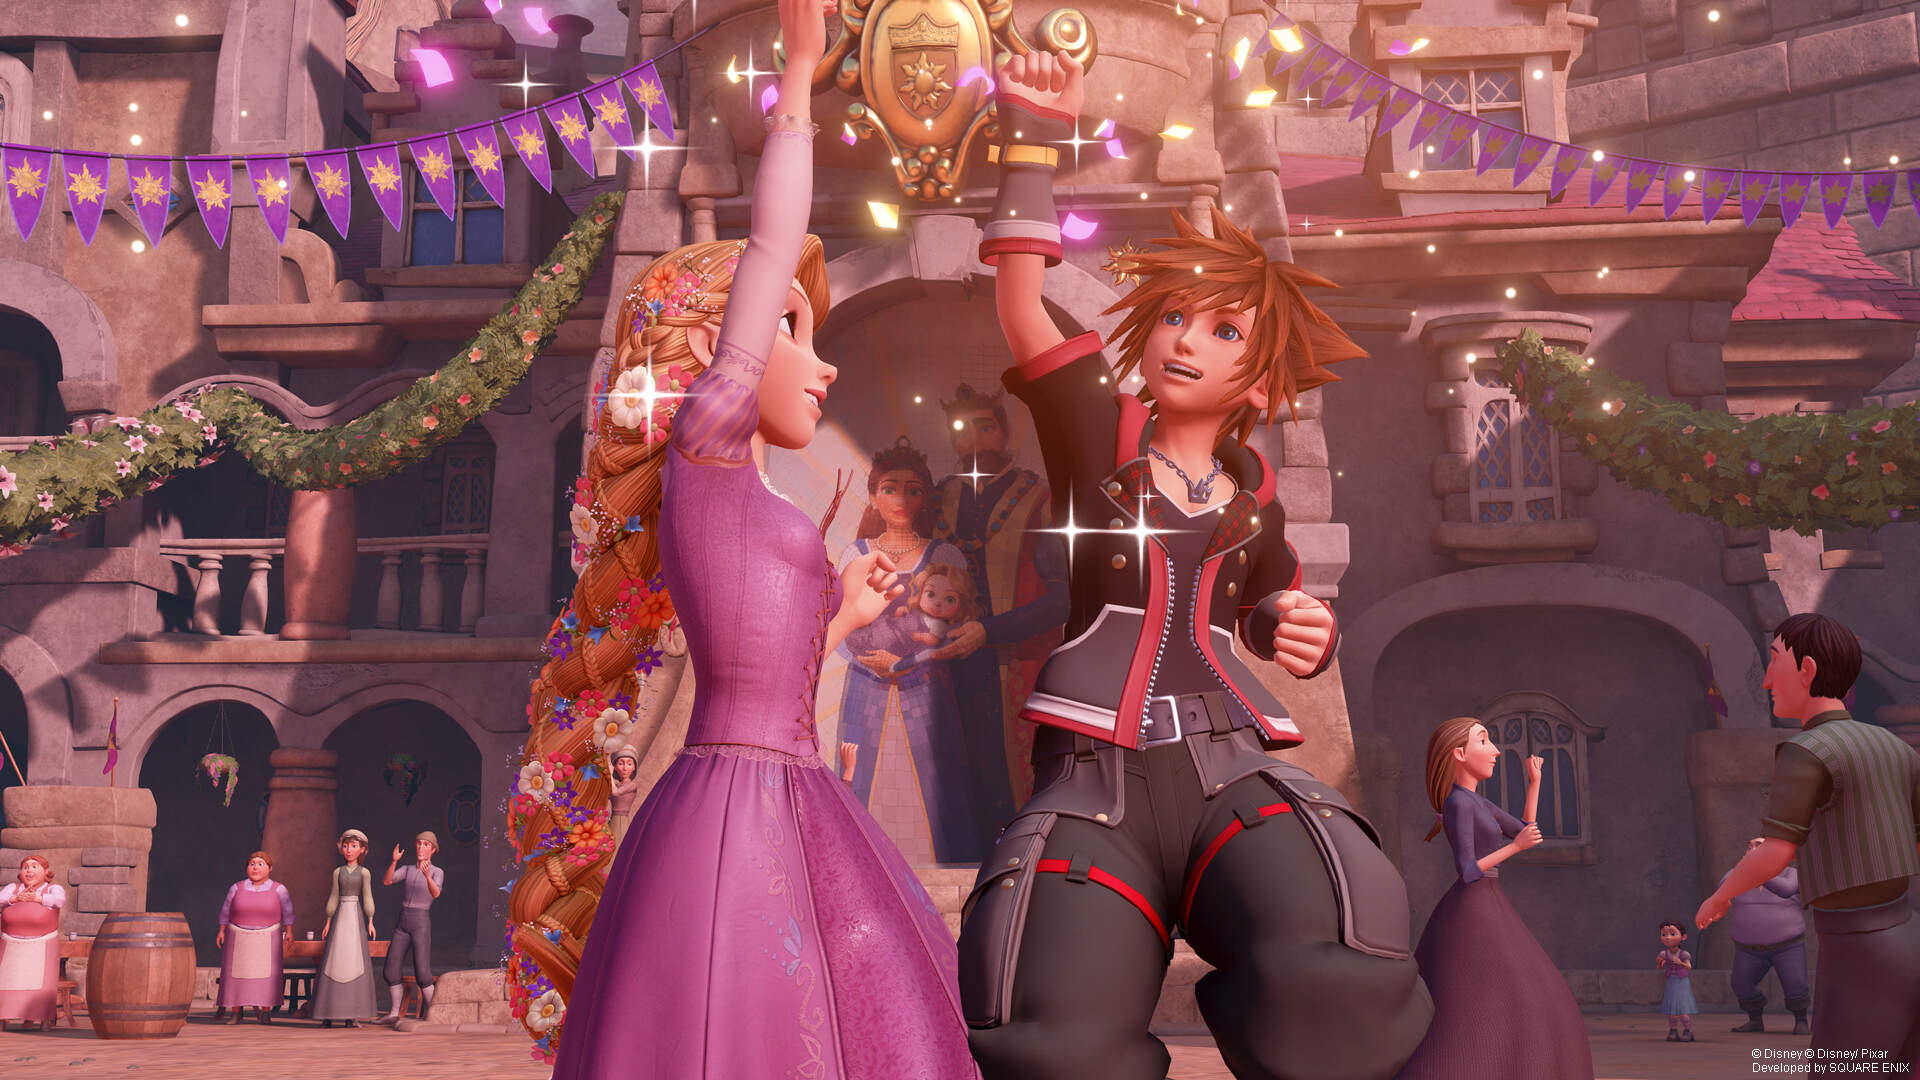 """Everyone Was Complaining I Should Cut More:"" Co-Director Tai Yasue on the Making of Kingdom Hearts 3"